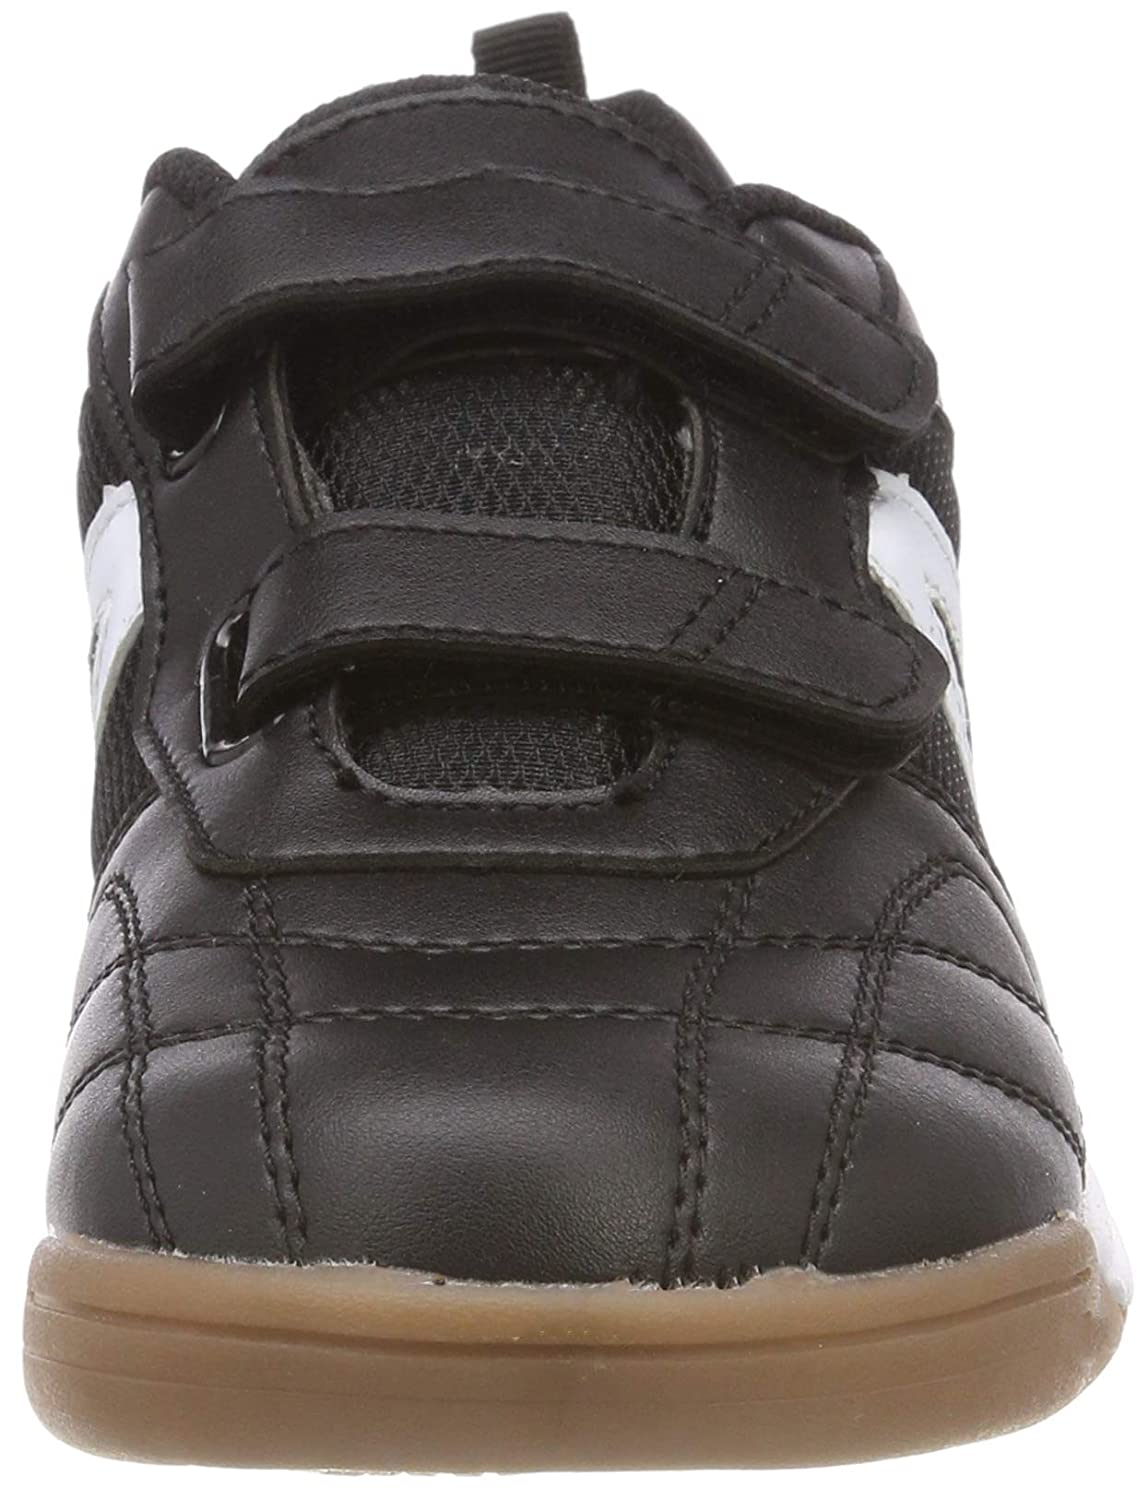 Chaussures Multisport Indoor Mixte Adulte Lico Action V